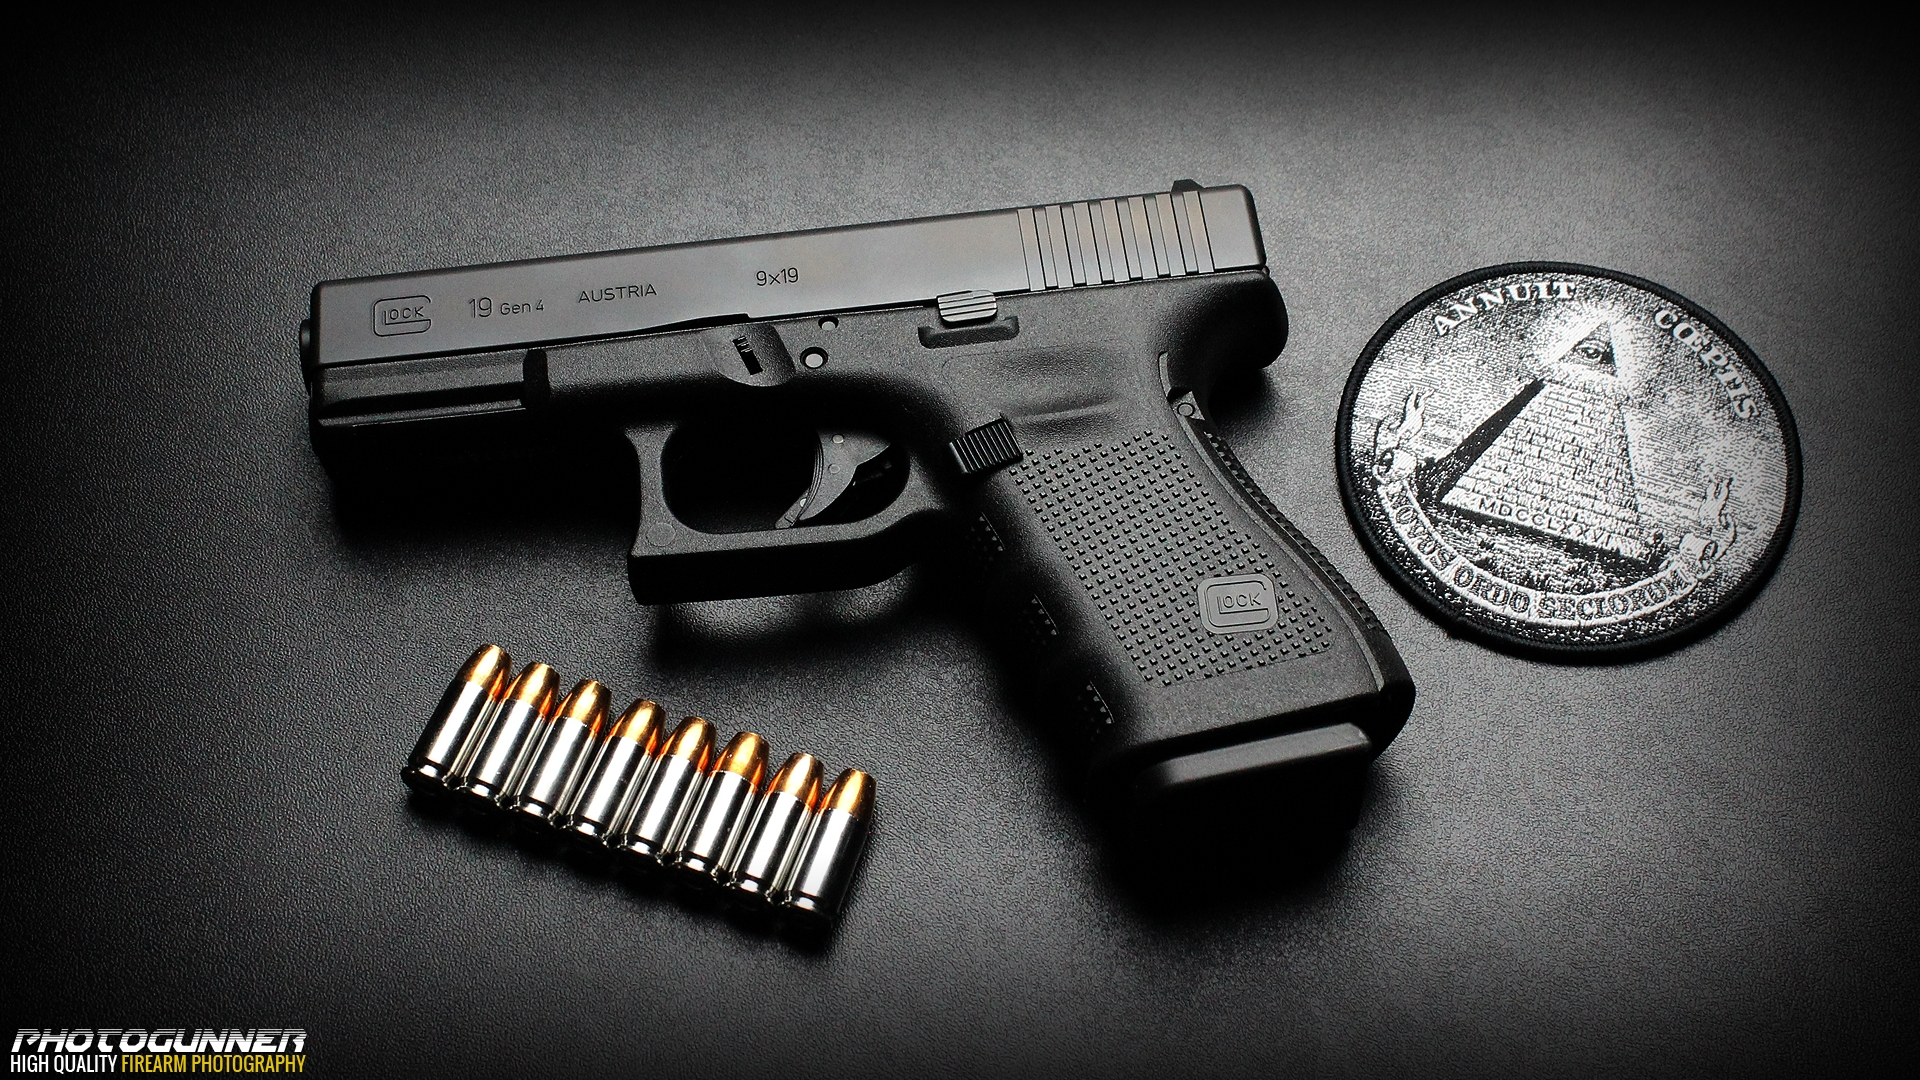 glock wallpapers, hd quality glock wallpapers for free, photos